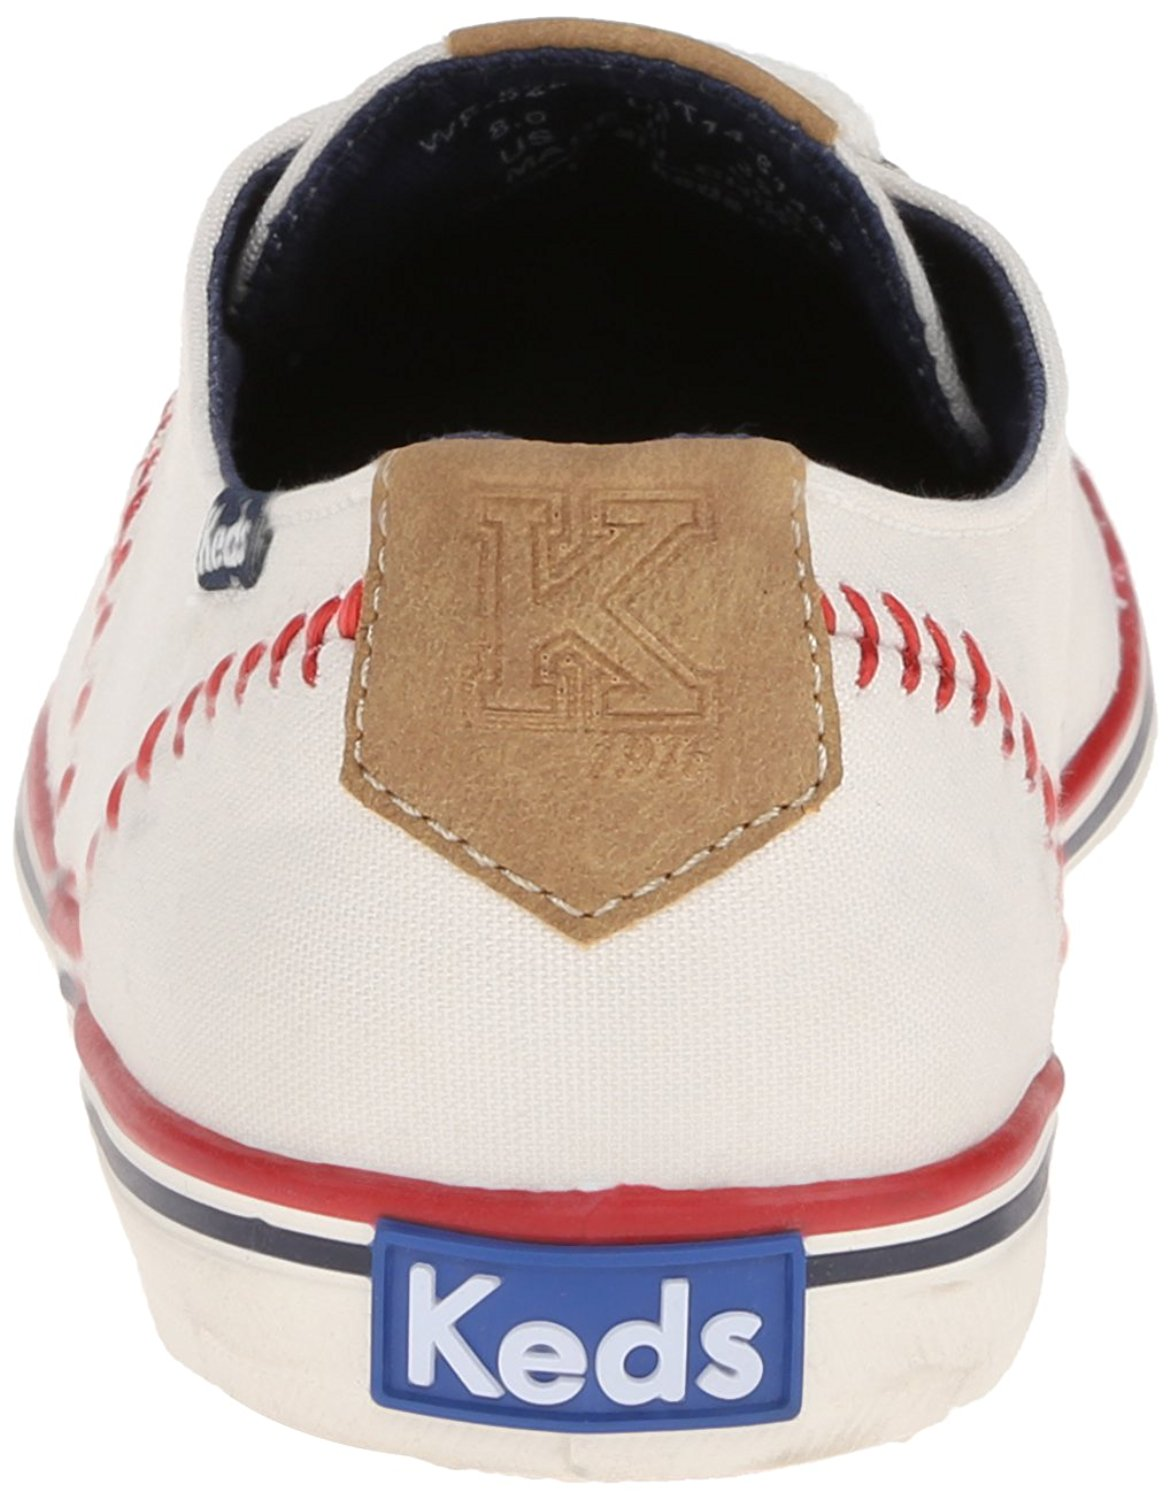 Keds - Keds Womens Champion Pennant Fabric Low Top Lace Up Fashion ... 9d931eb78